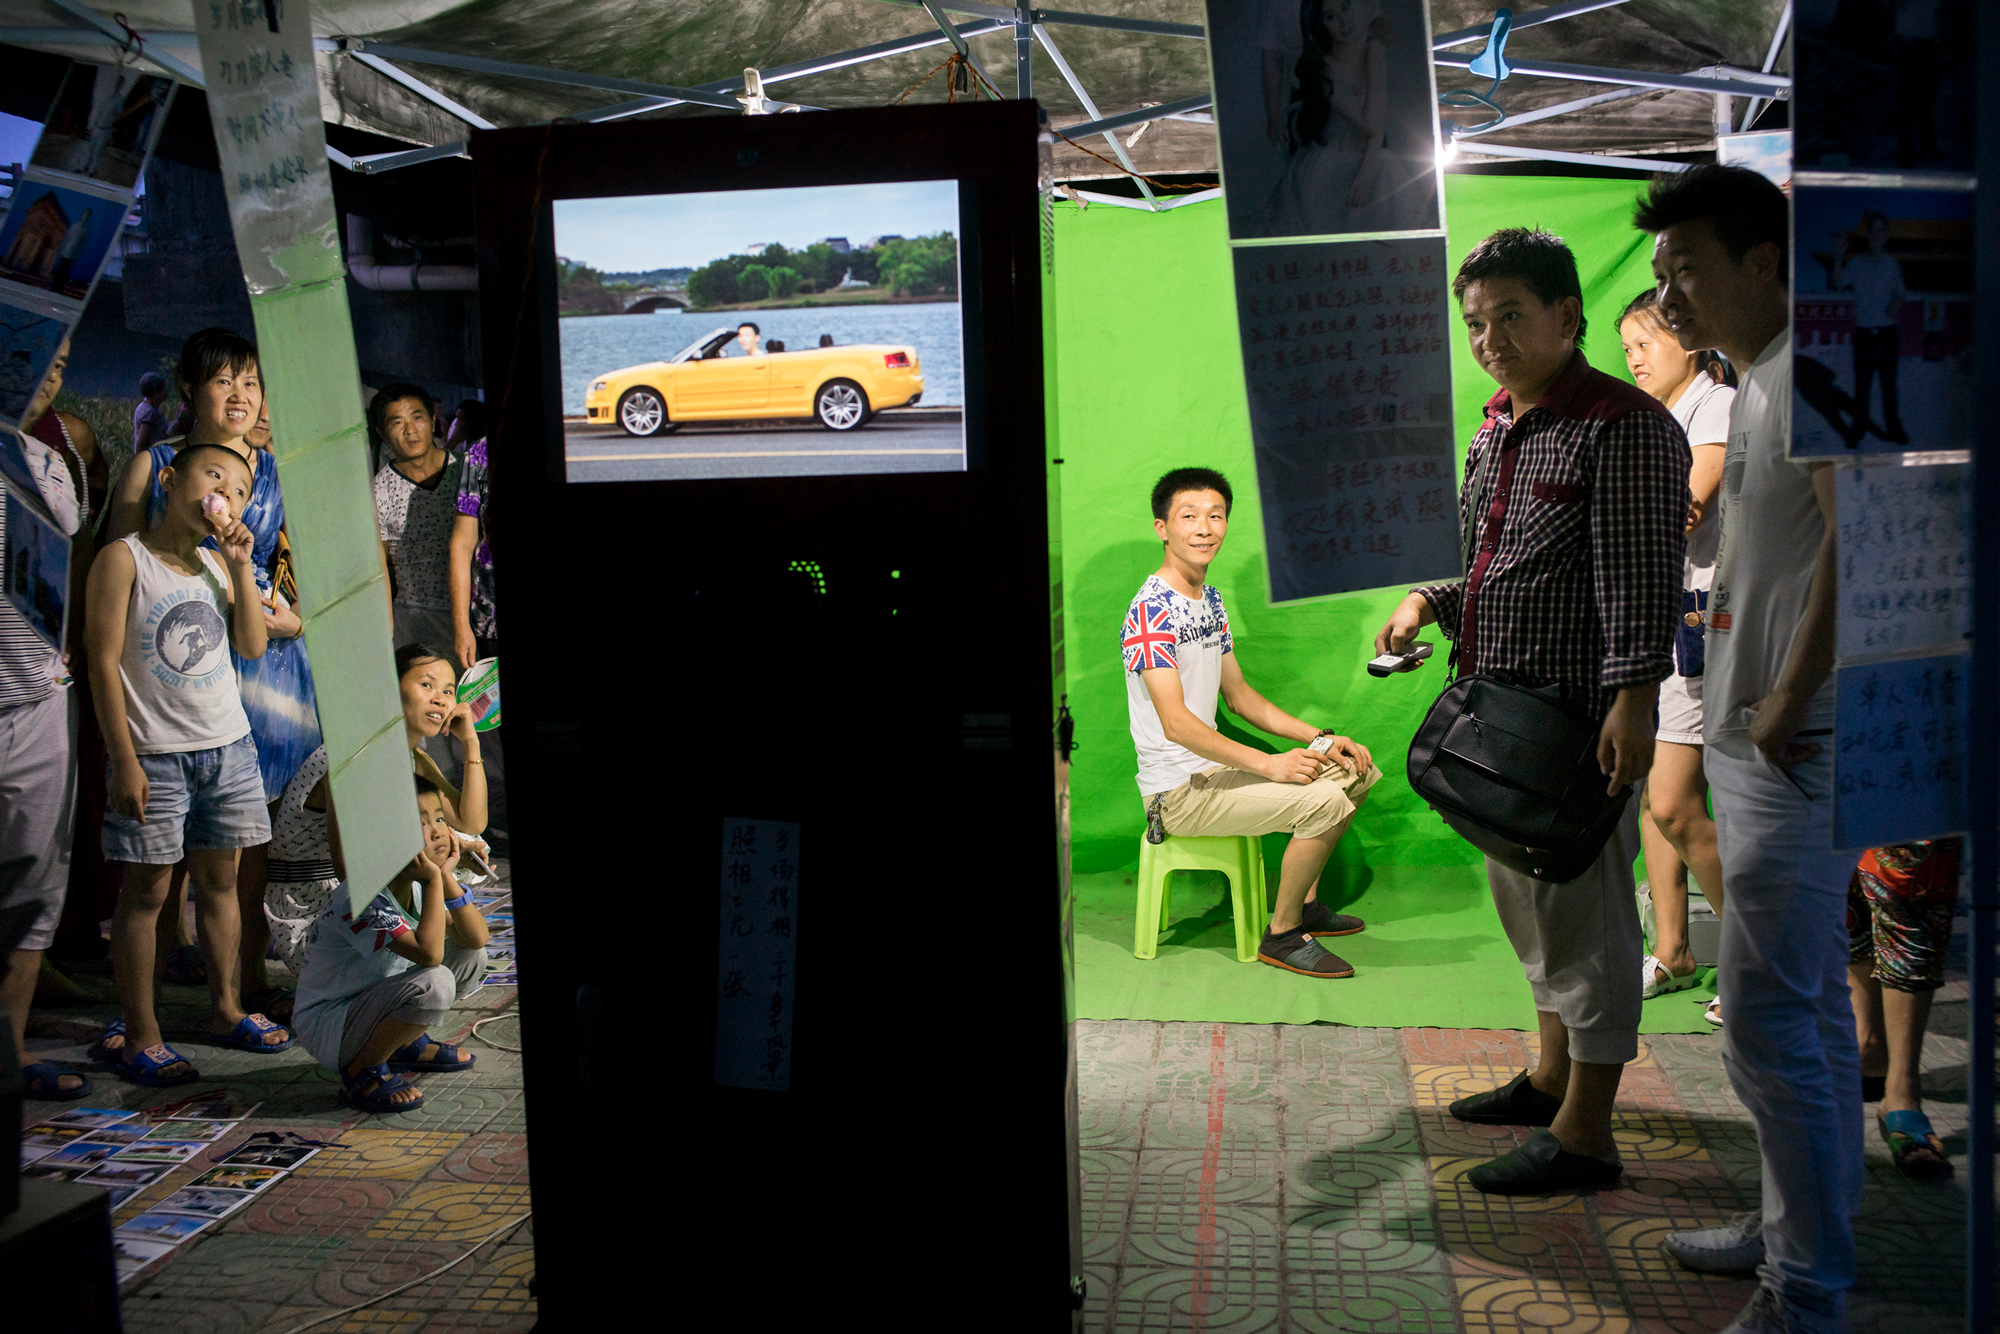 A man sits in front of a green screen at a photo booth where a digitally manipulated image with a simulated background is displayed on a screen, July 17, 2015.